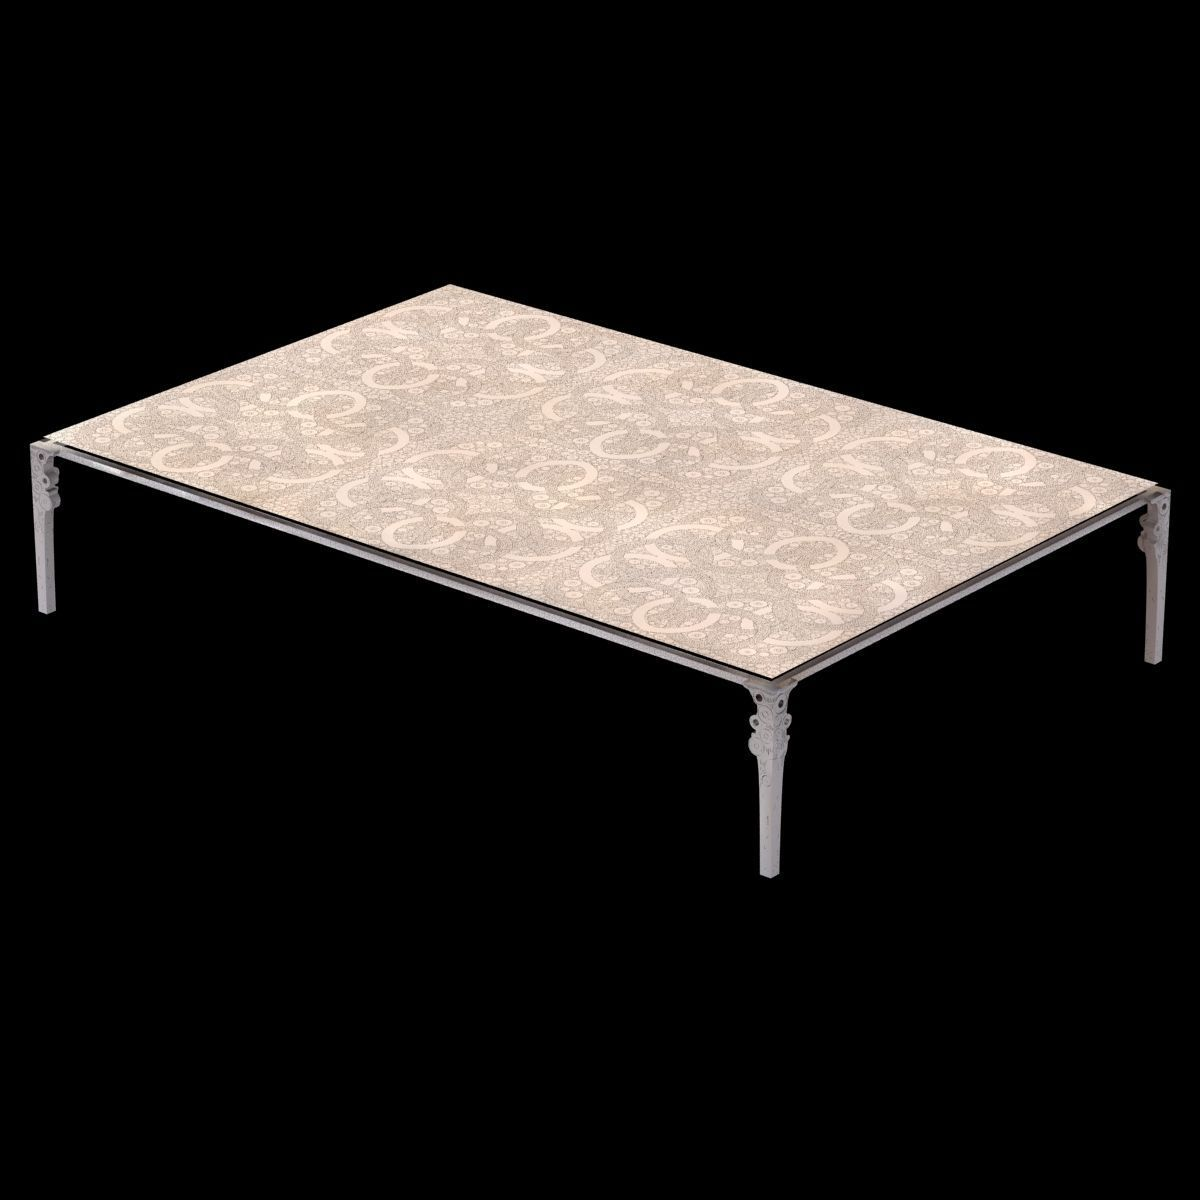 Tabke Basse Ingrid Donat Table Basse Anneaux 3d Model